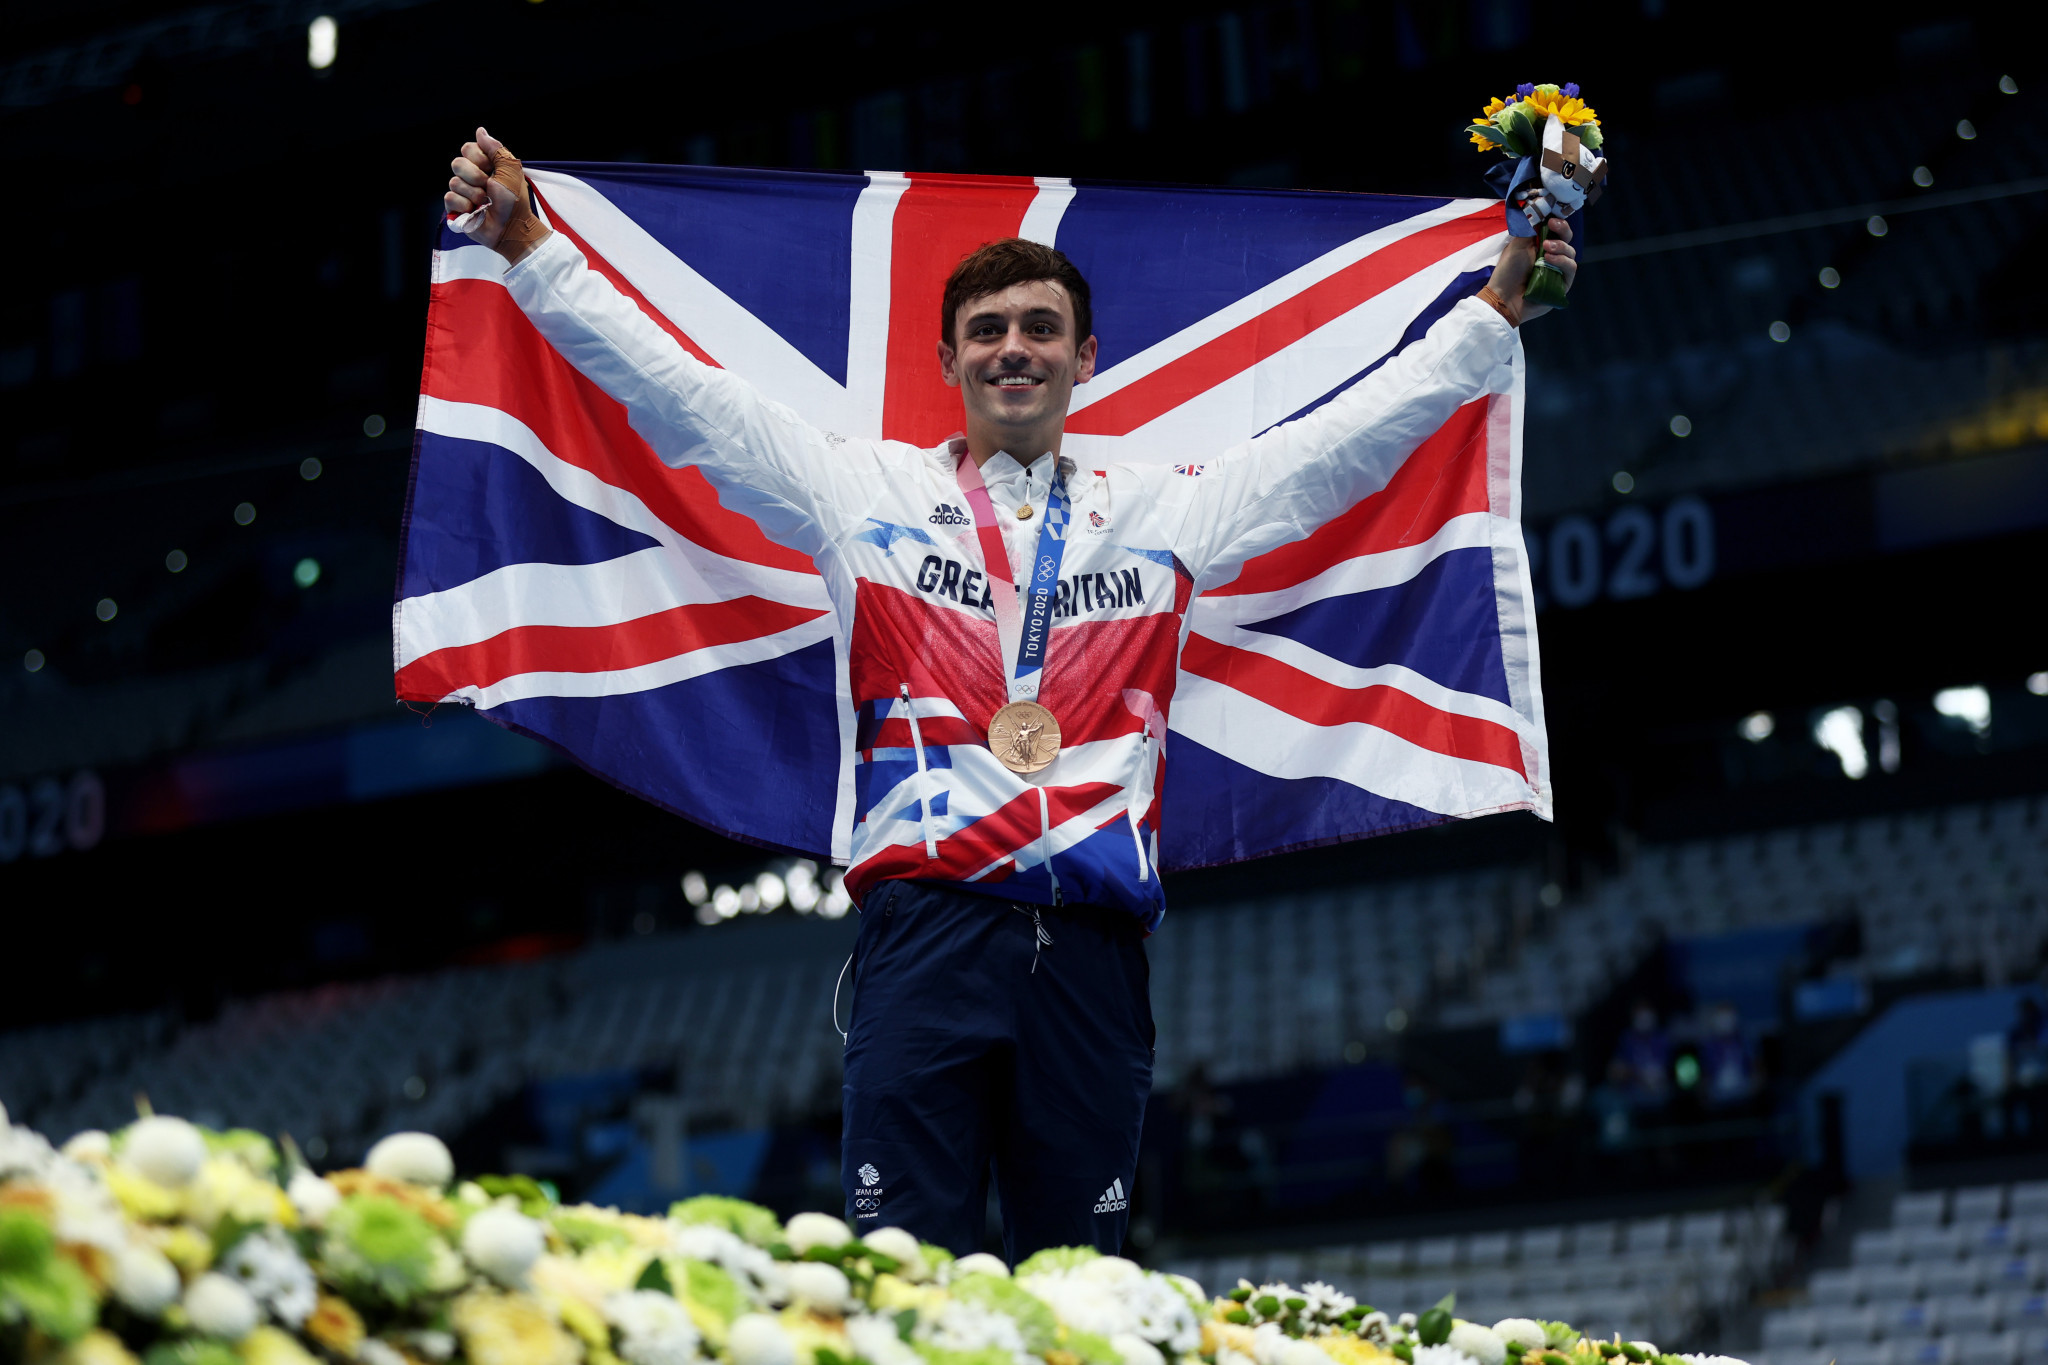 Daley calls for countries where homosexuality punishable by death to be banned from Olympics